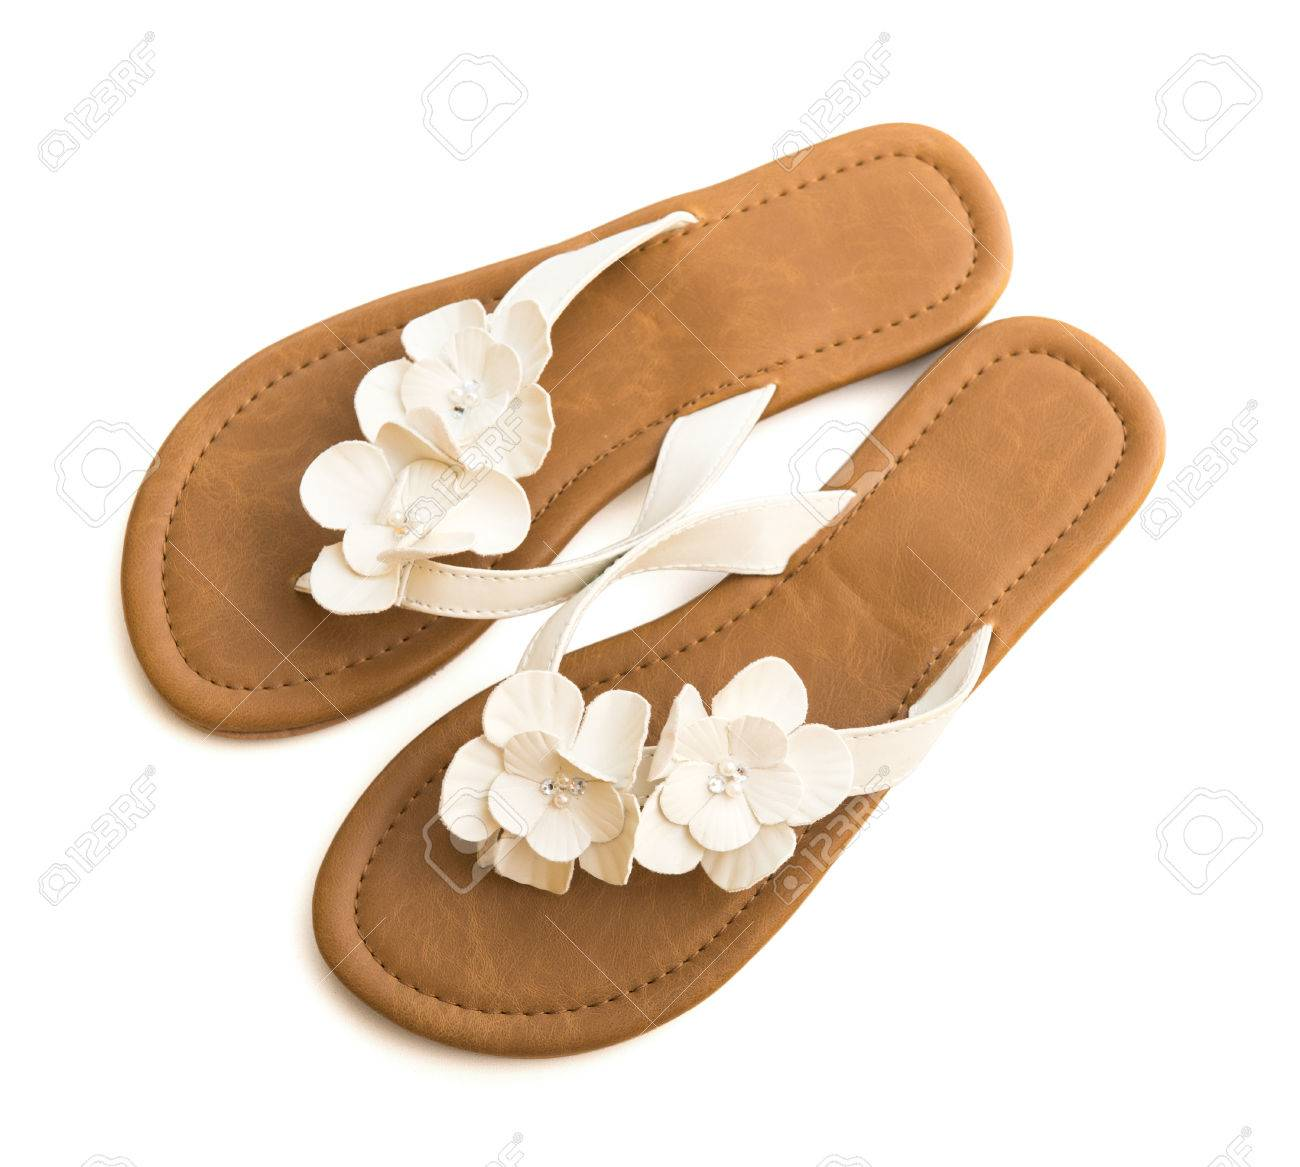 e7af9dd4f320 flip-flops with flowers on white isolated Stock Photo - 38585448